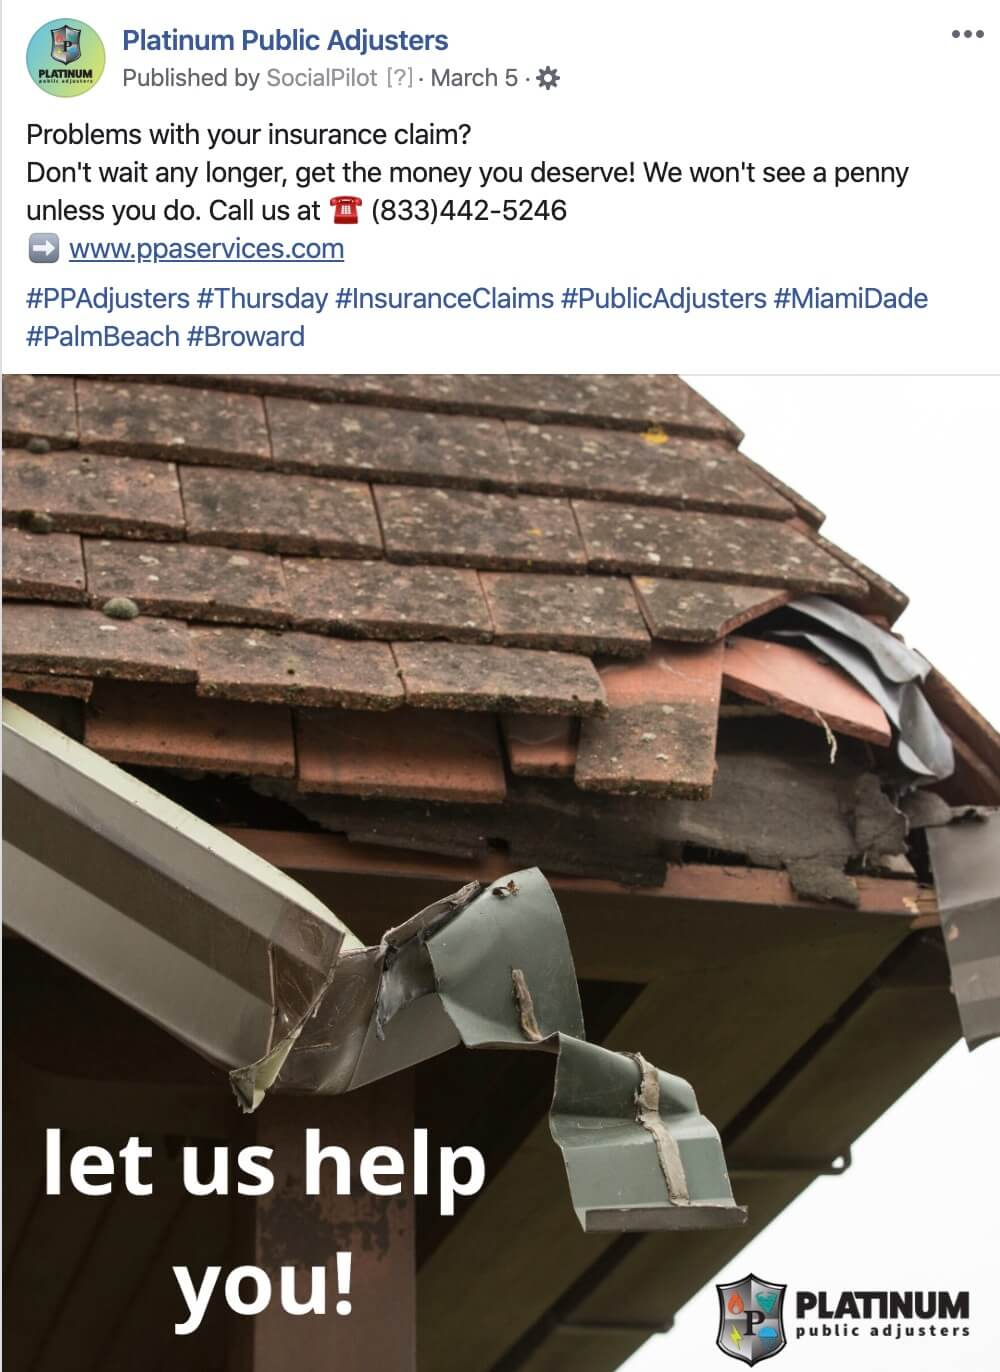 Social Media for Roofing Companies or Public Adjusters